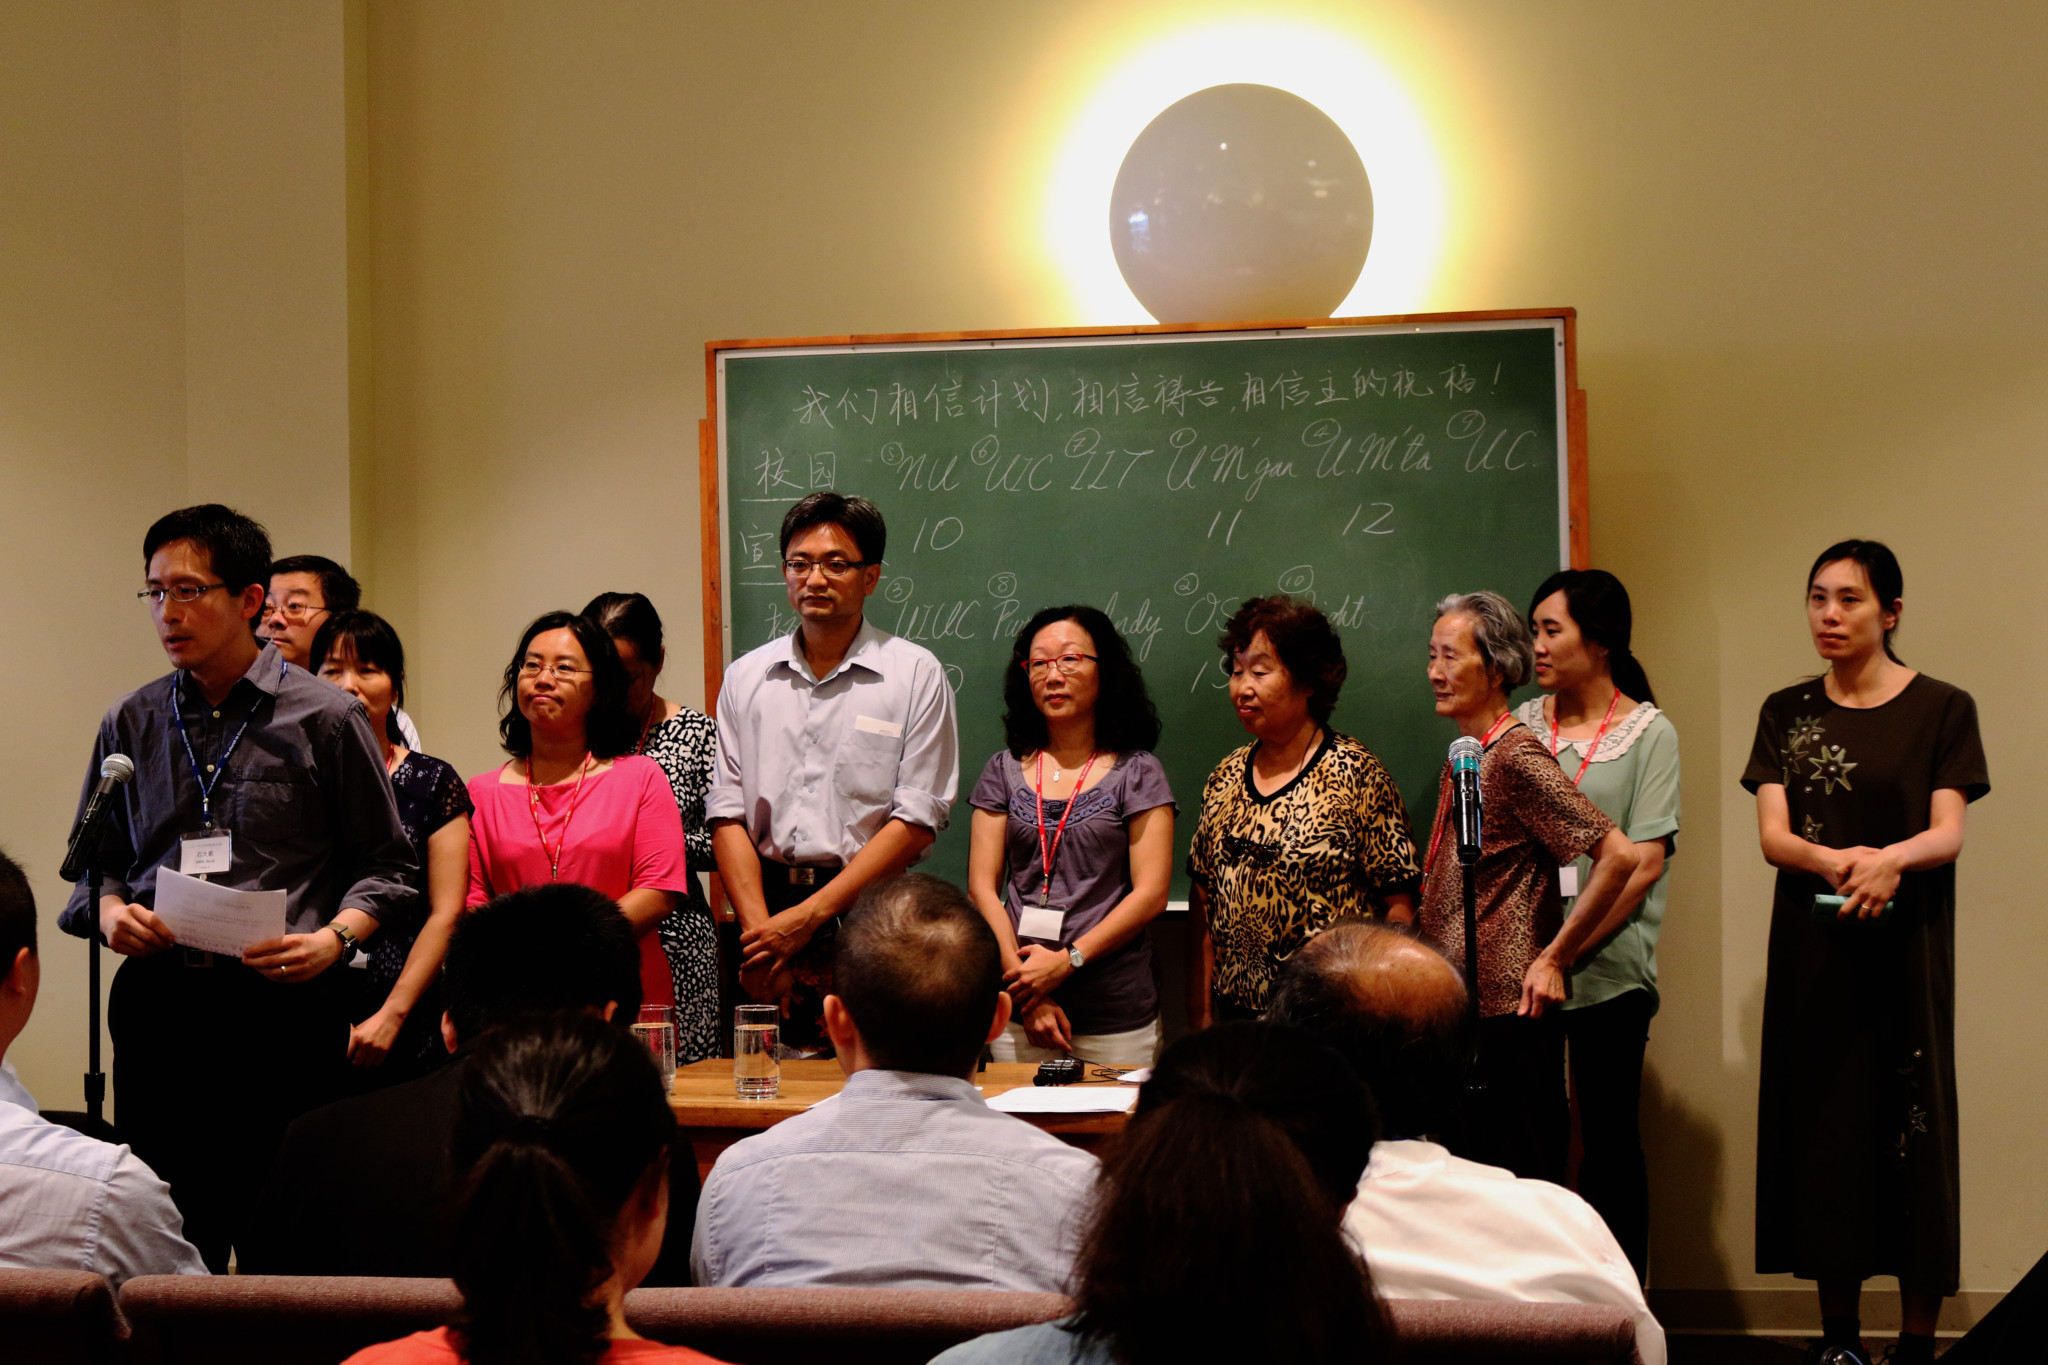 Chinese Perfecting Training UIC Neighborhood Saints